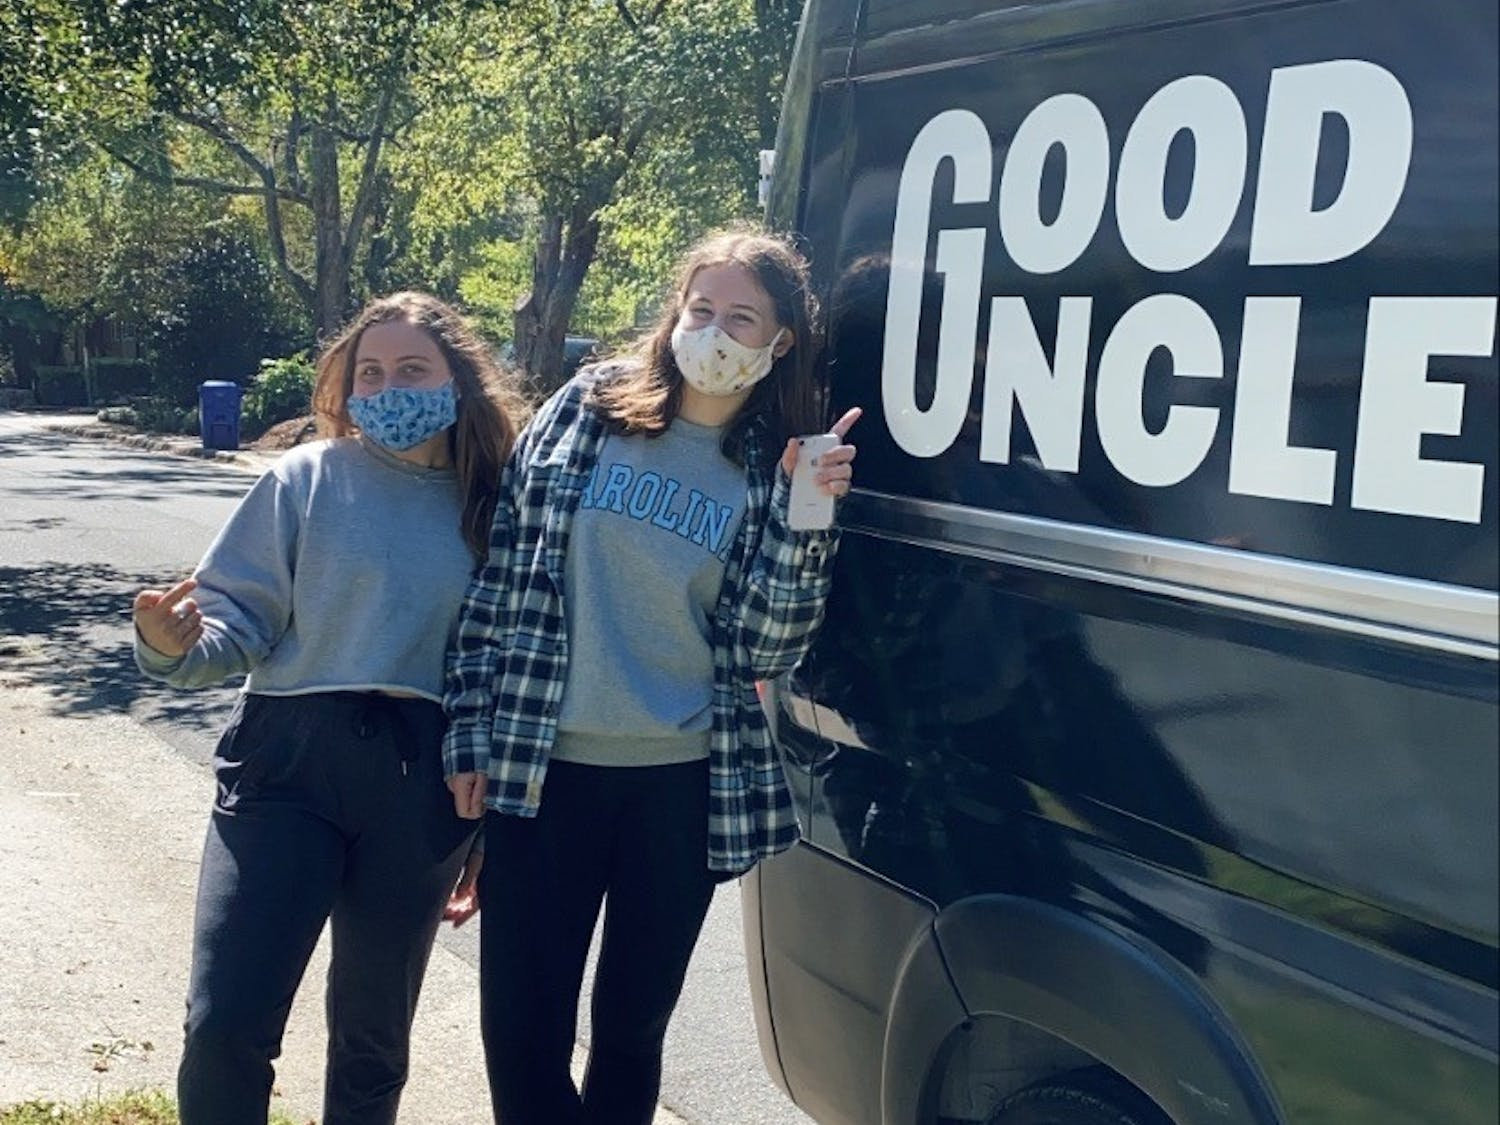 Seniors Samantha Savage (Left) and Rachael Stone (Right) pick up brunch from a Good Uncle food truck. Photo courtesy of Caroline Jones.